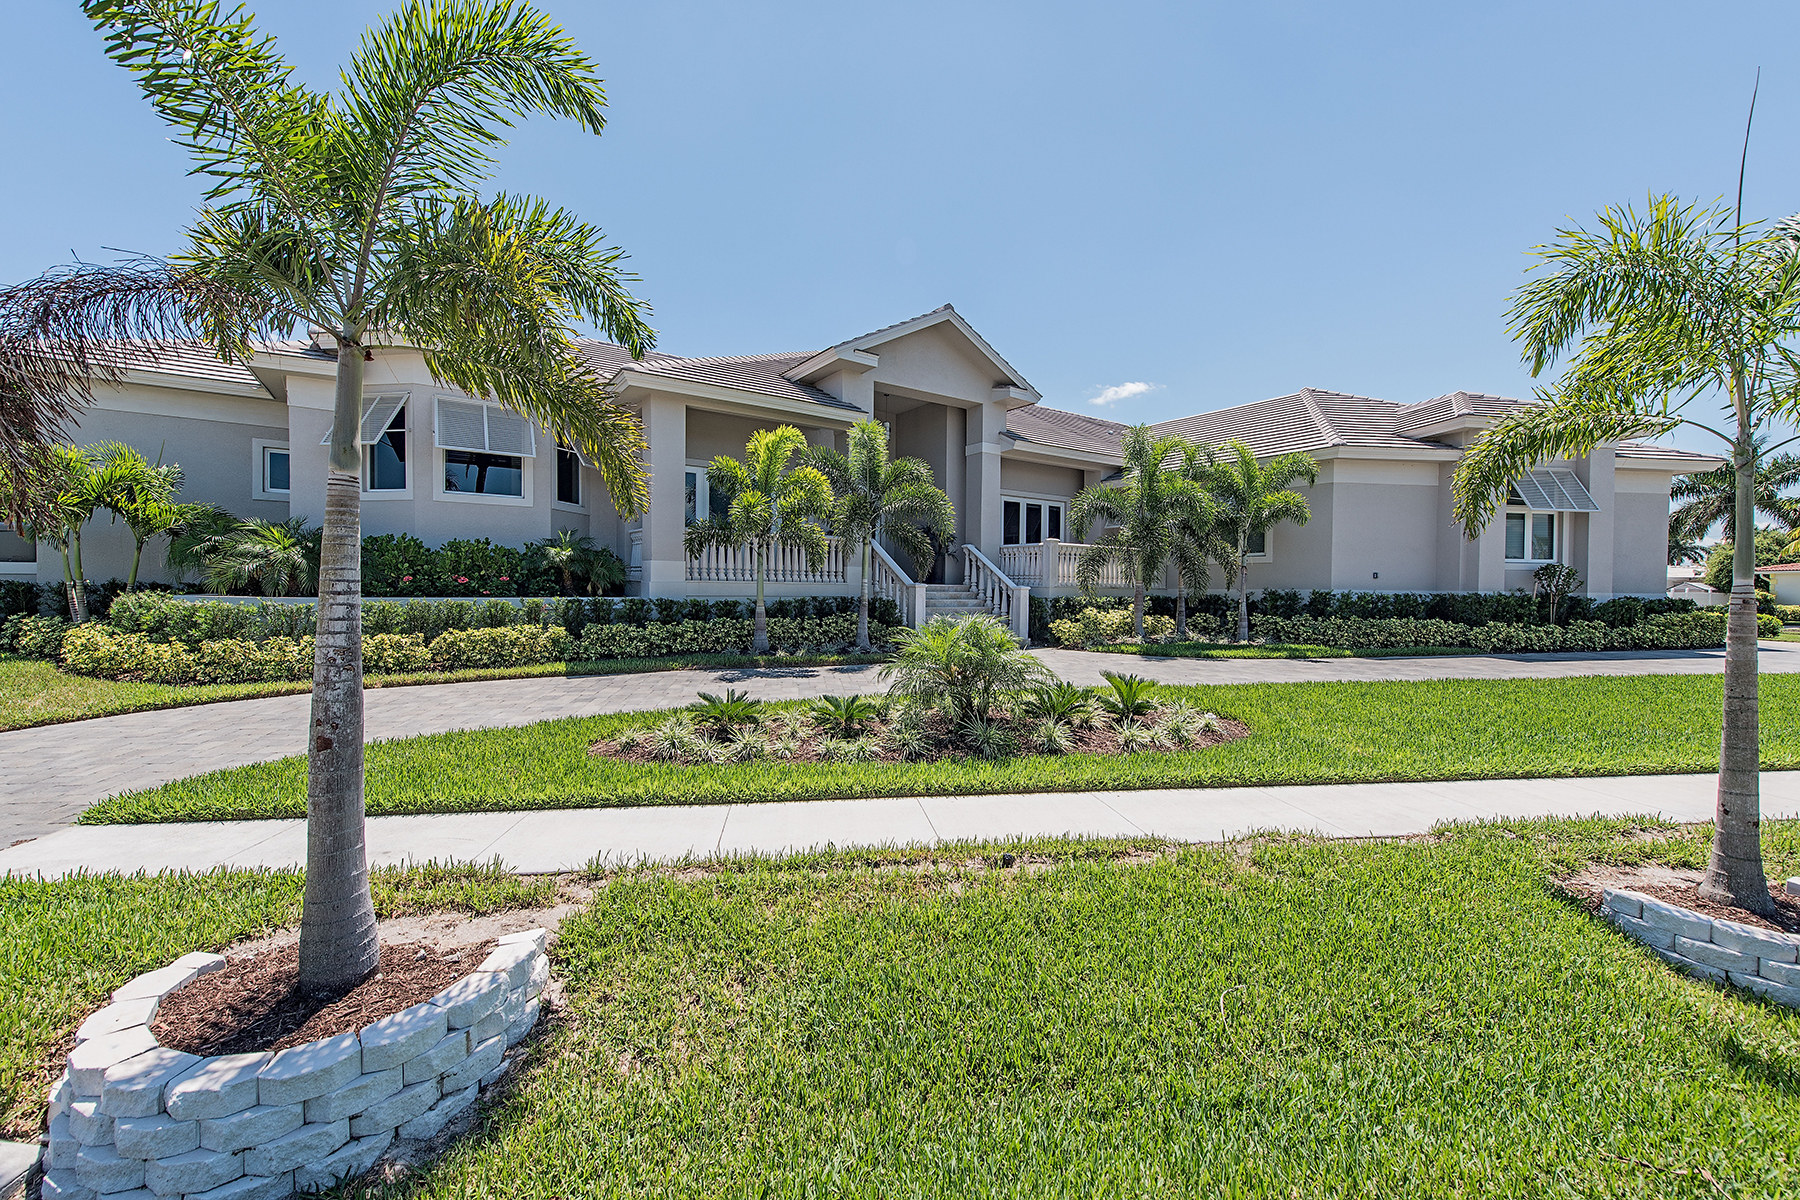 Single Family Home for Sale at MARCO ISLAND - LAUREL COURT 1231 Laurel Ct Marco Island, Florida 34145 United States